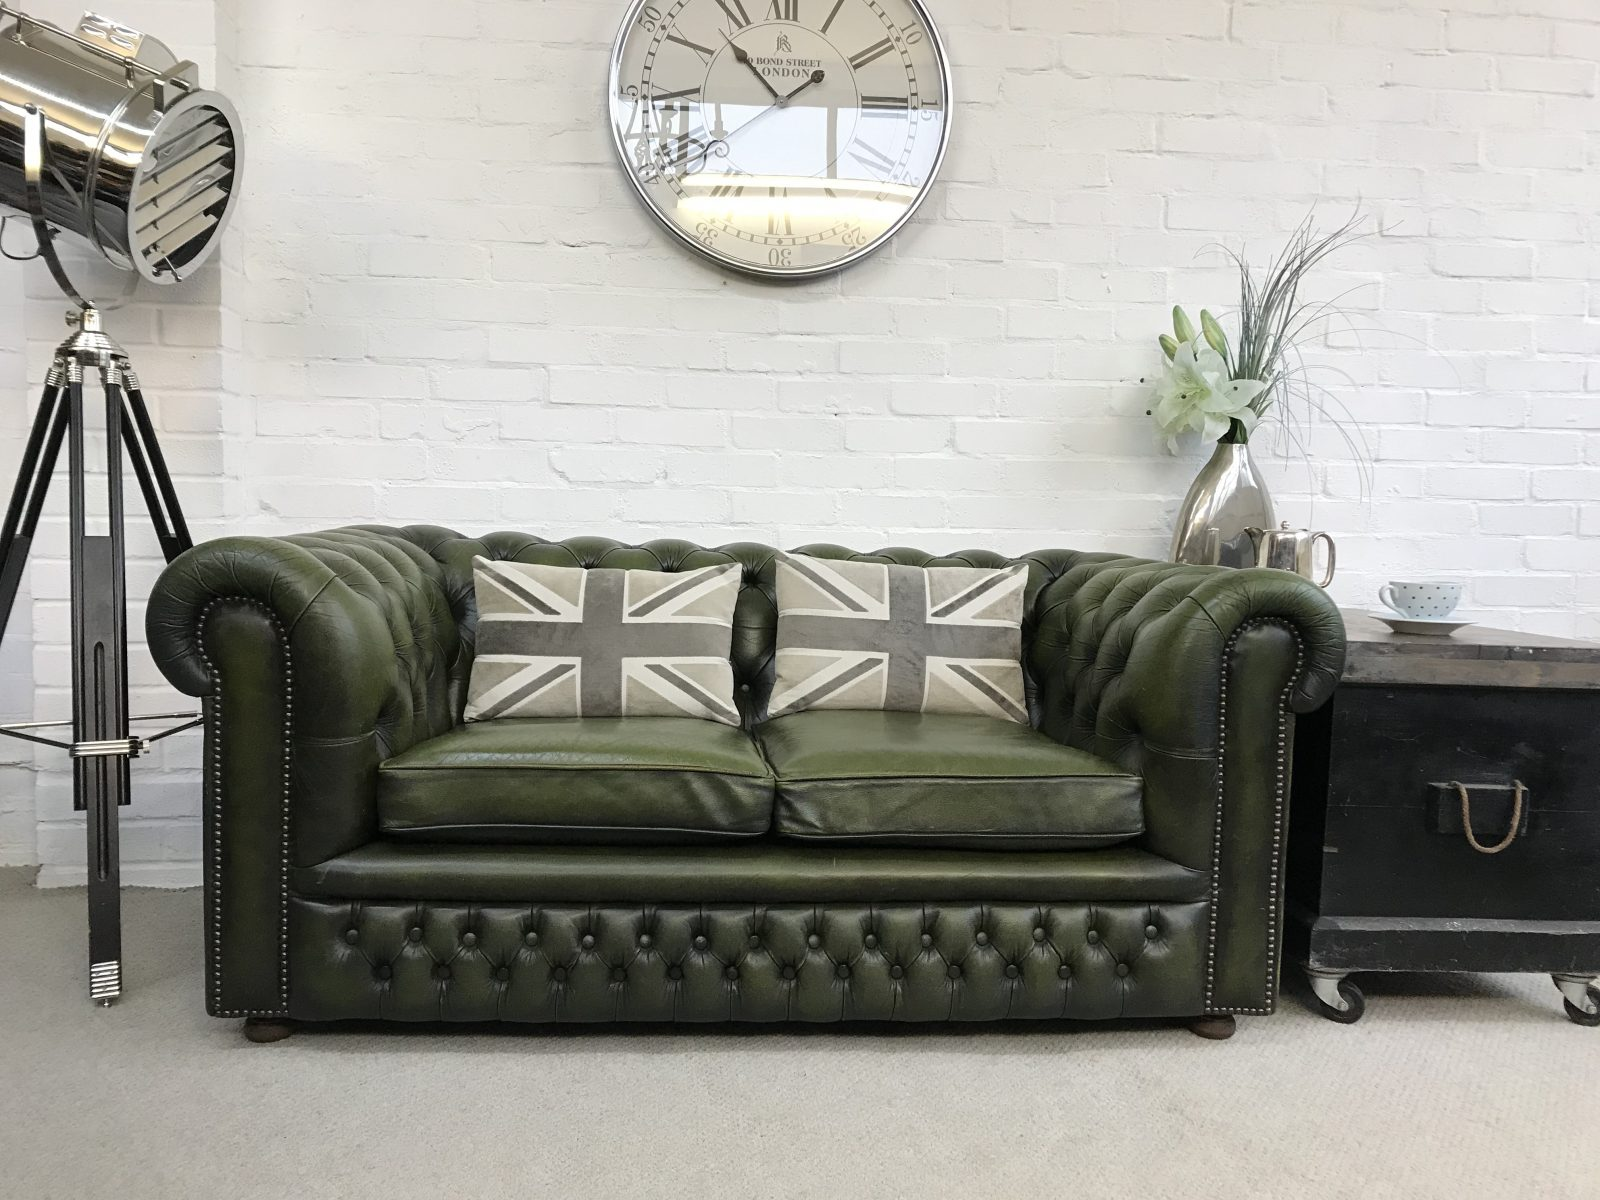 Vintage Olive Green Chesterfield Sofa.